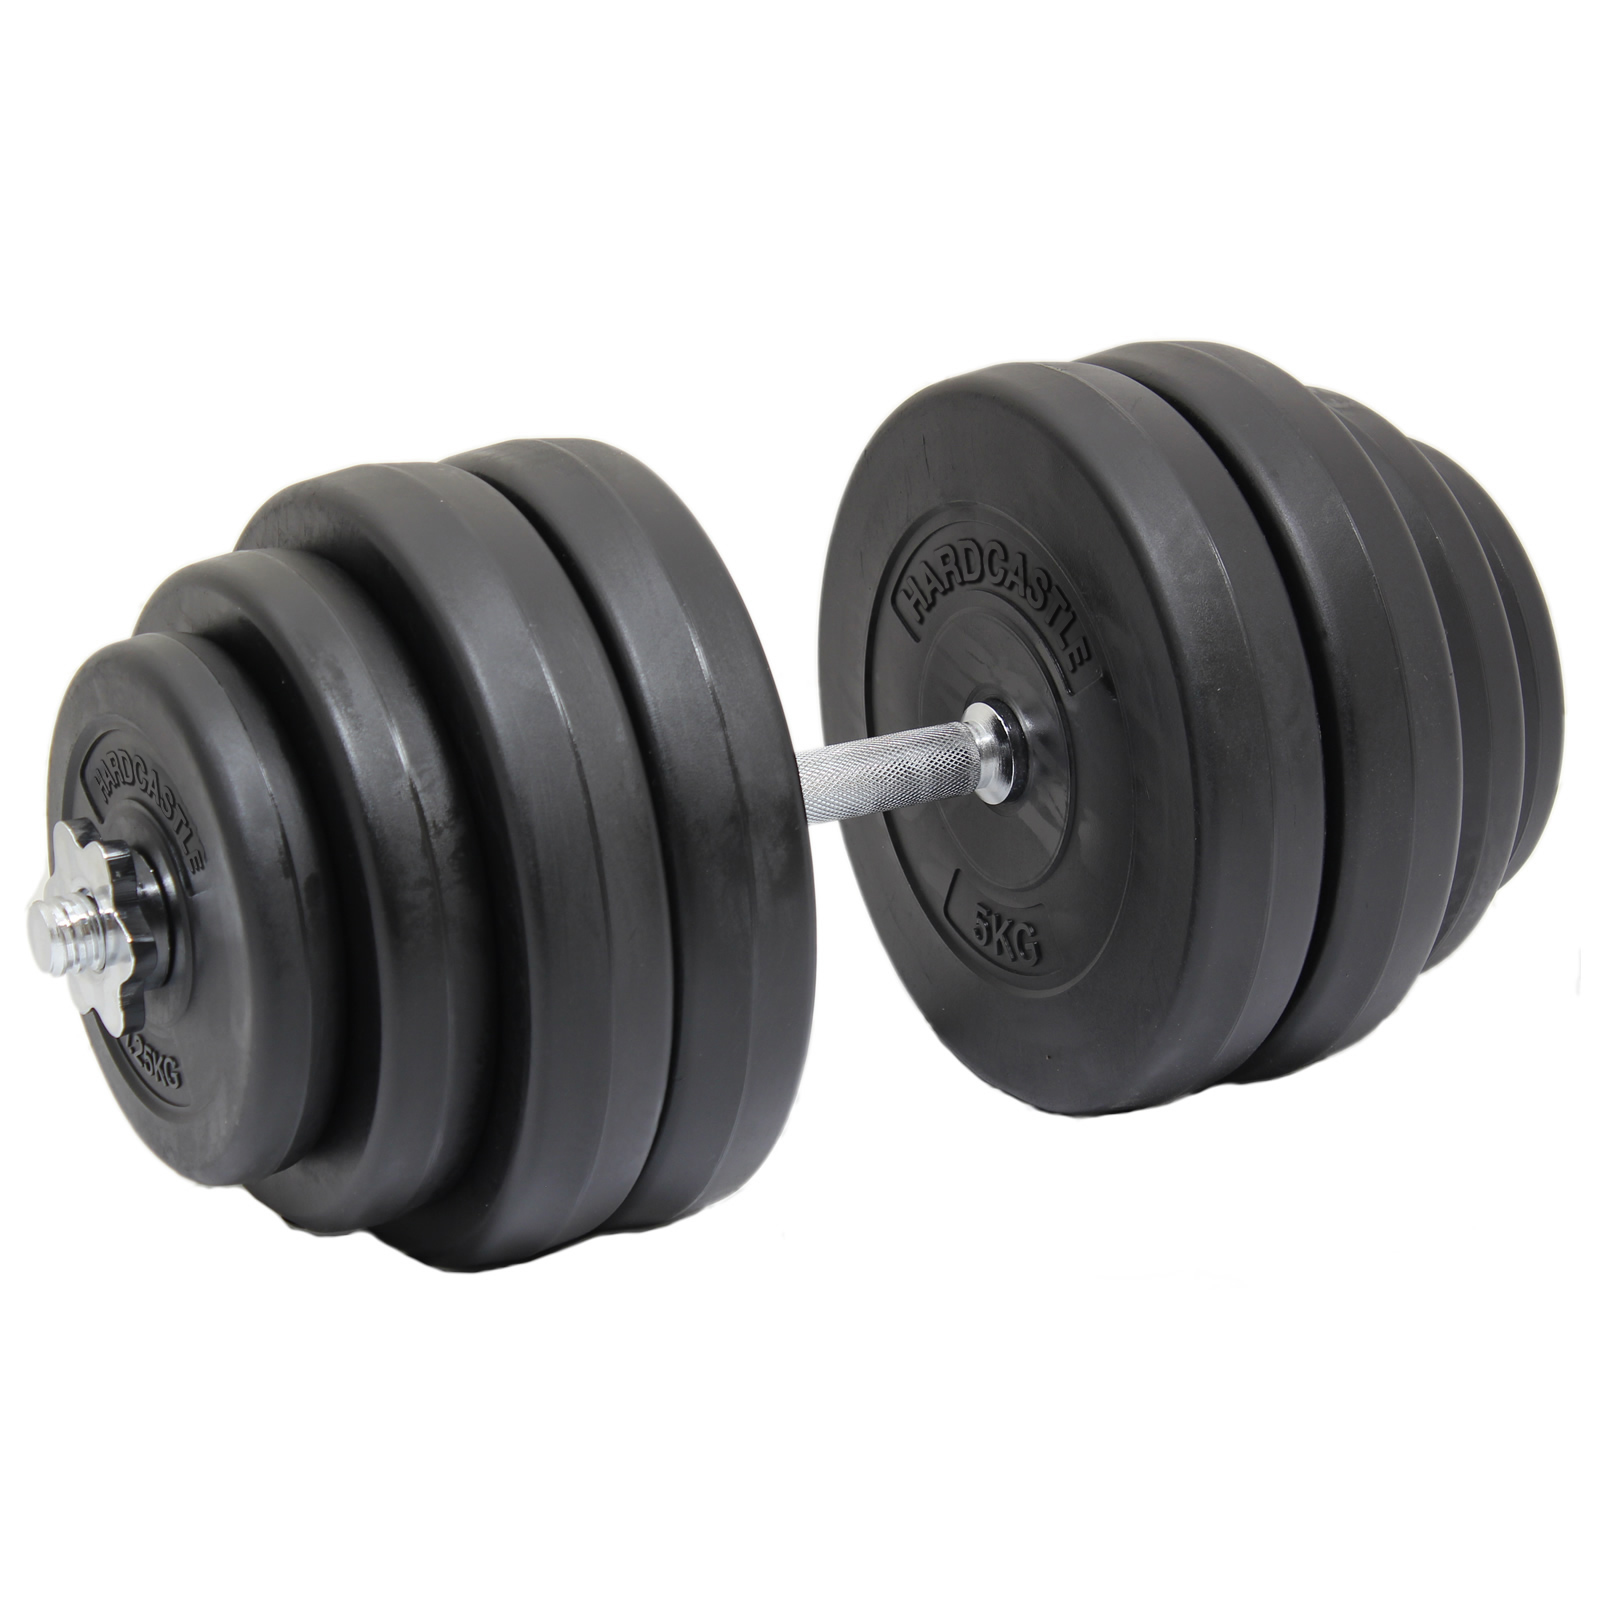 Free Weights Strength Training: 30KG SINGLE HEAVY DUMBBELL FREE WEIGHT SET GYM BARBELL